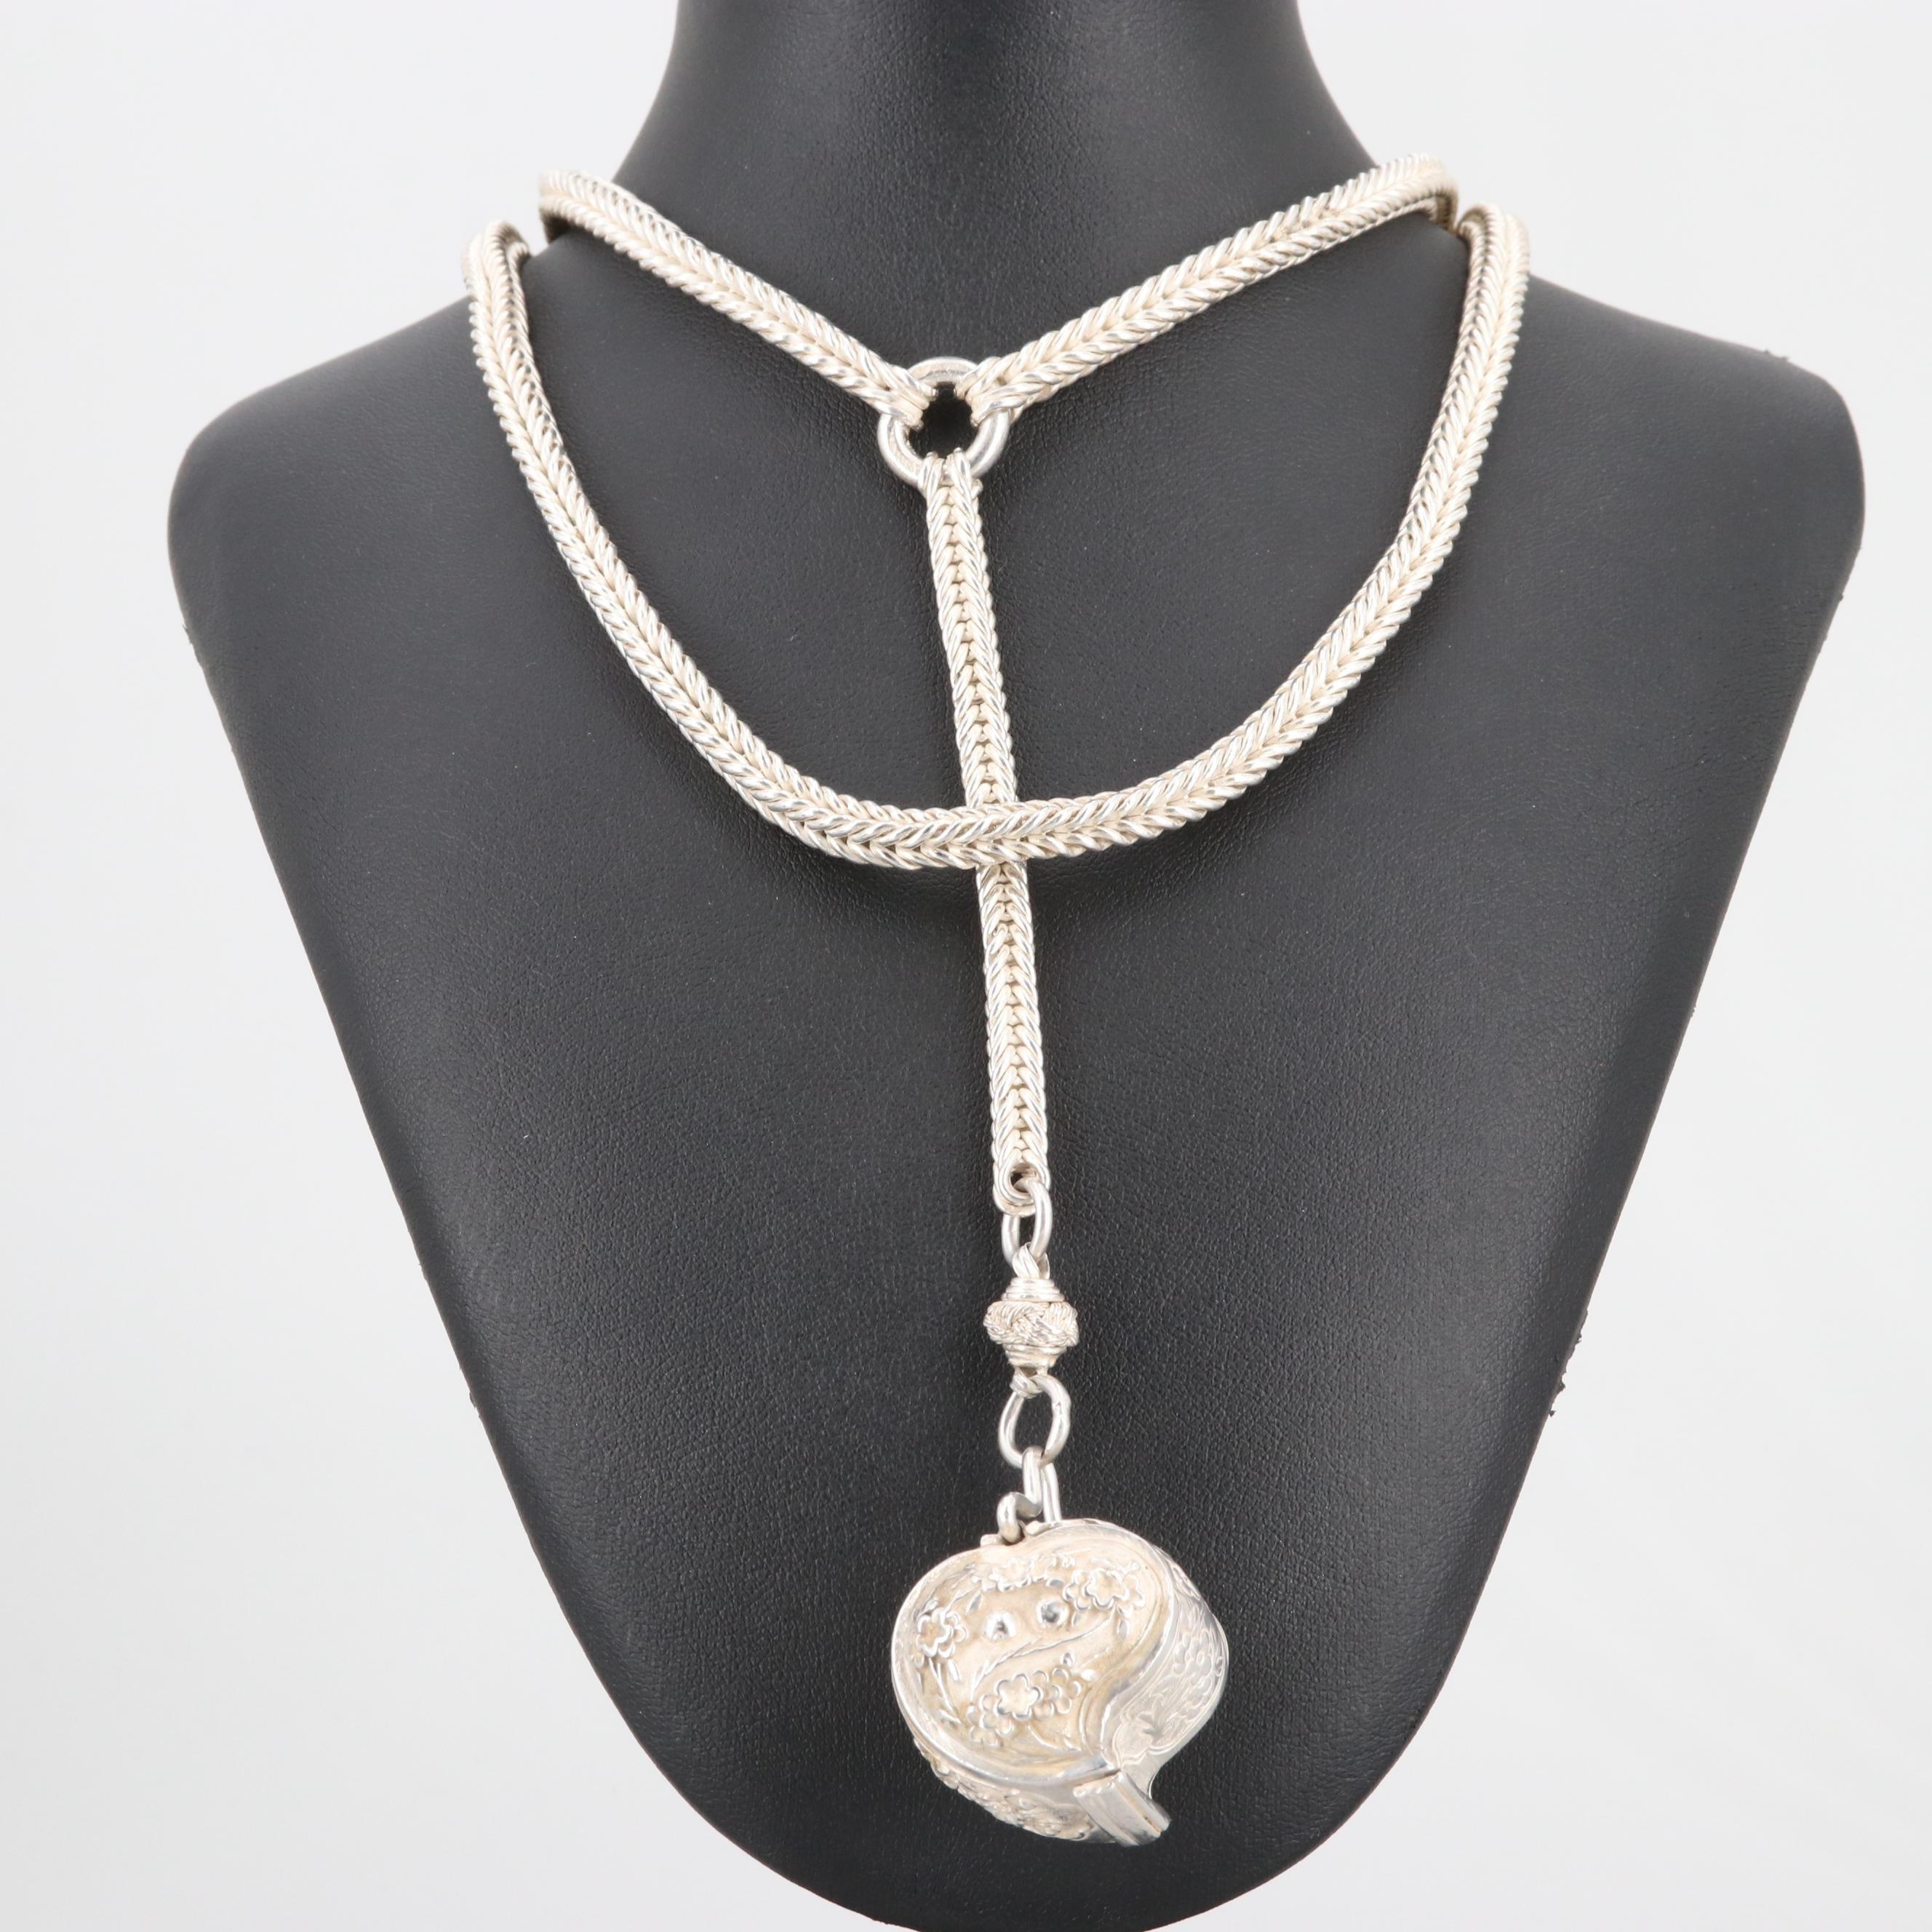 Sterling Silver Locket Pendant with Endless Necklace